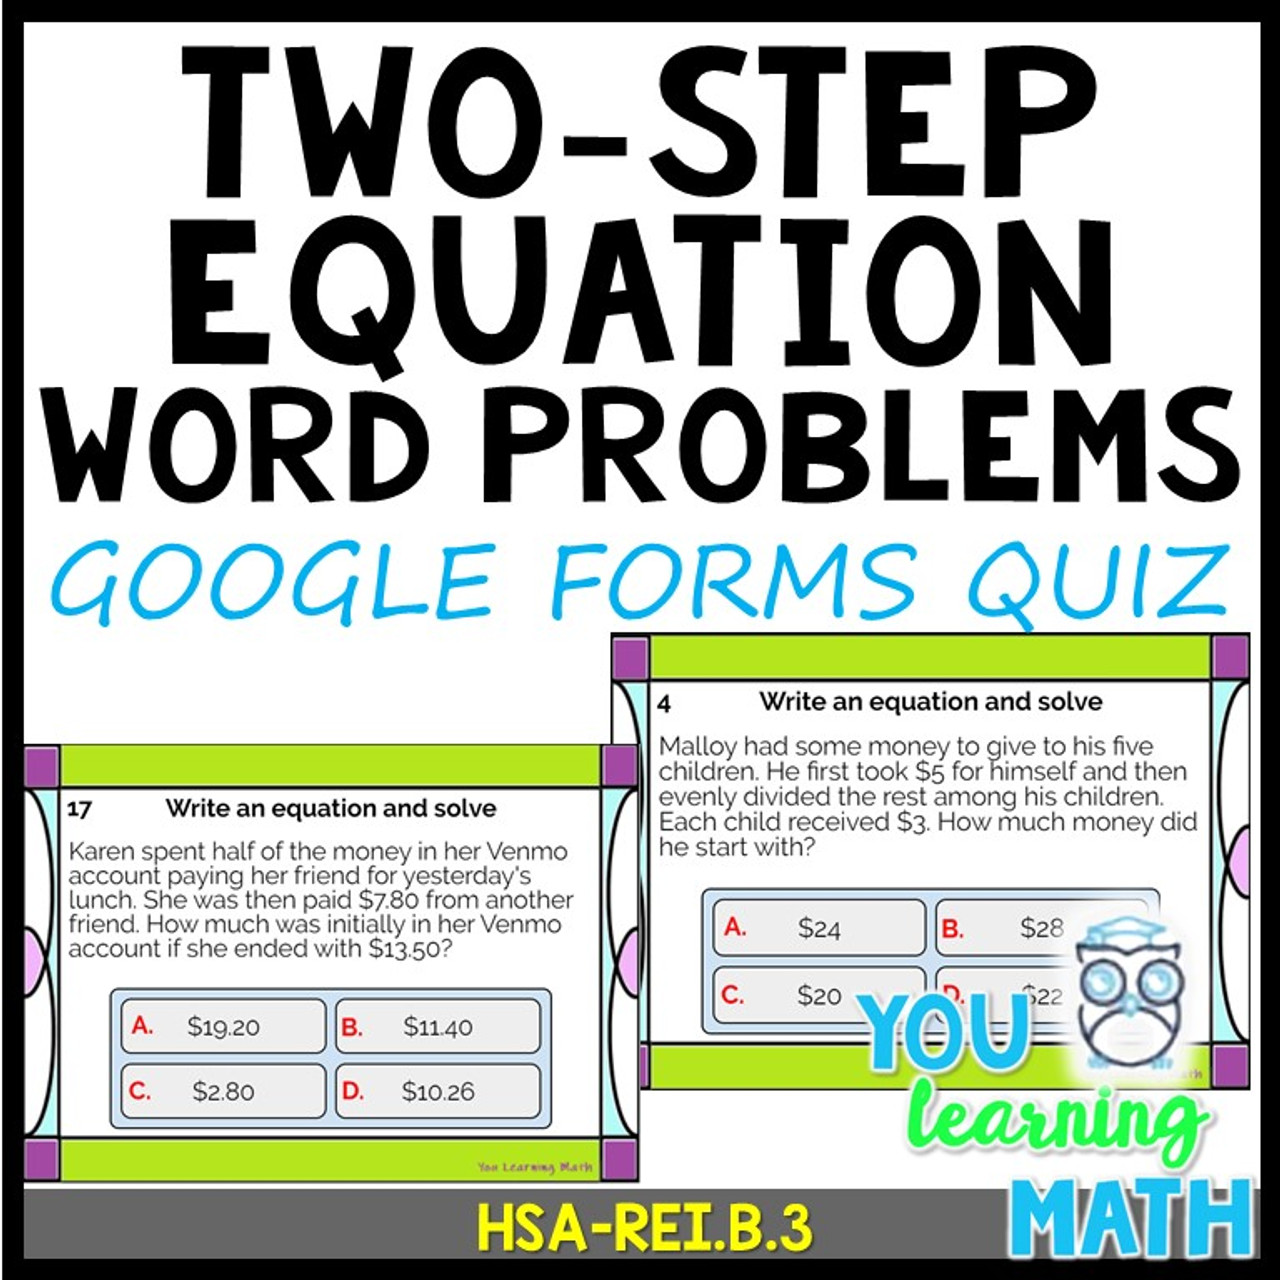 hight resolution of Two-Step Equation Word Problems: Google Forms Quiz - 20 Problems - Amped Up  Learning